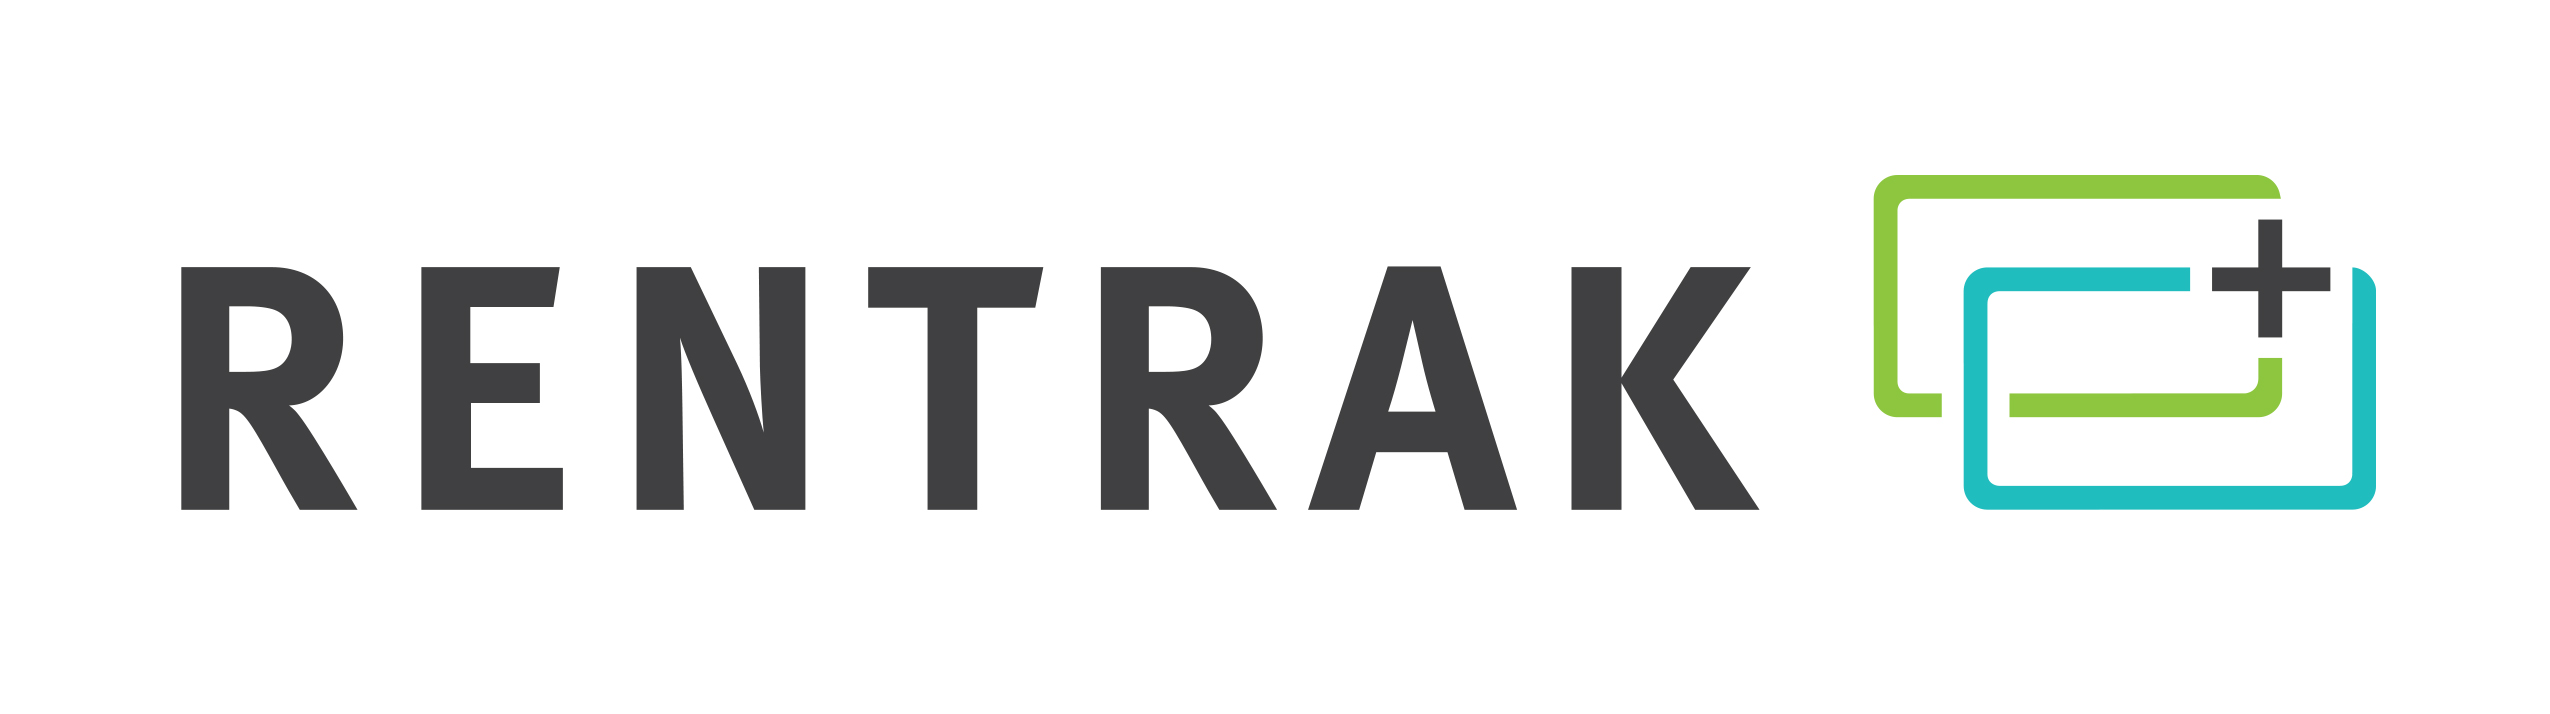 Rentrak Corporation (RENT)